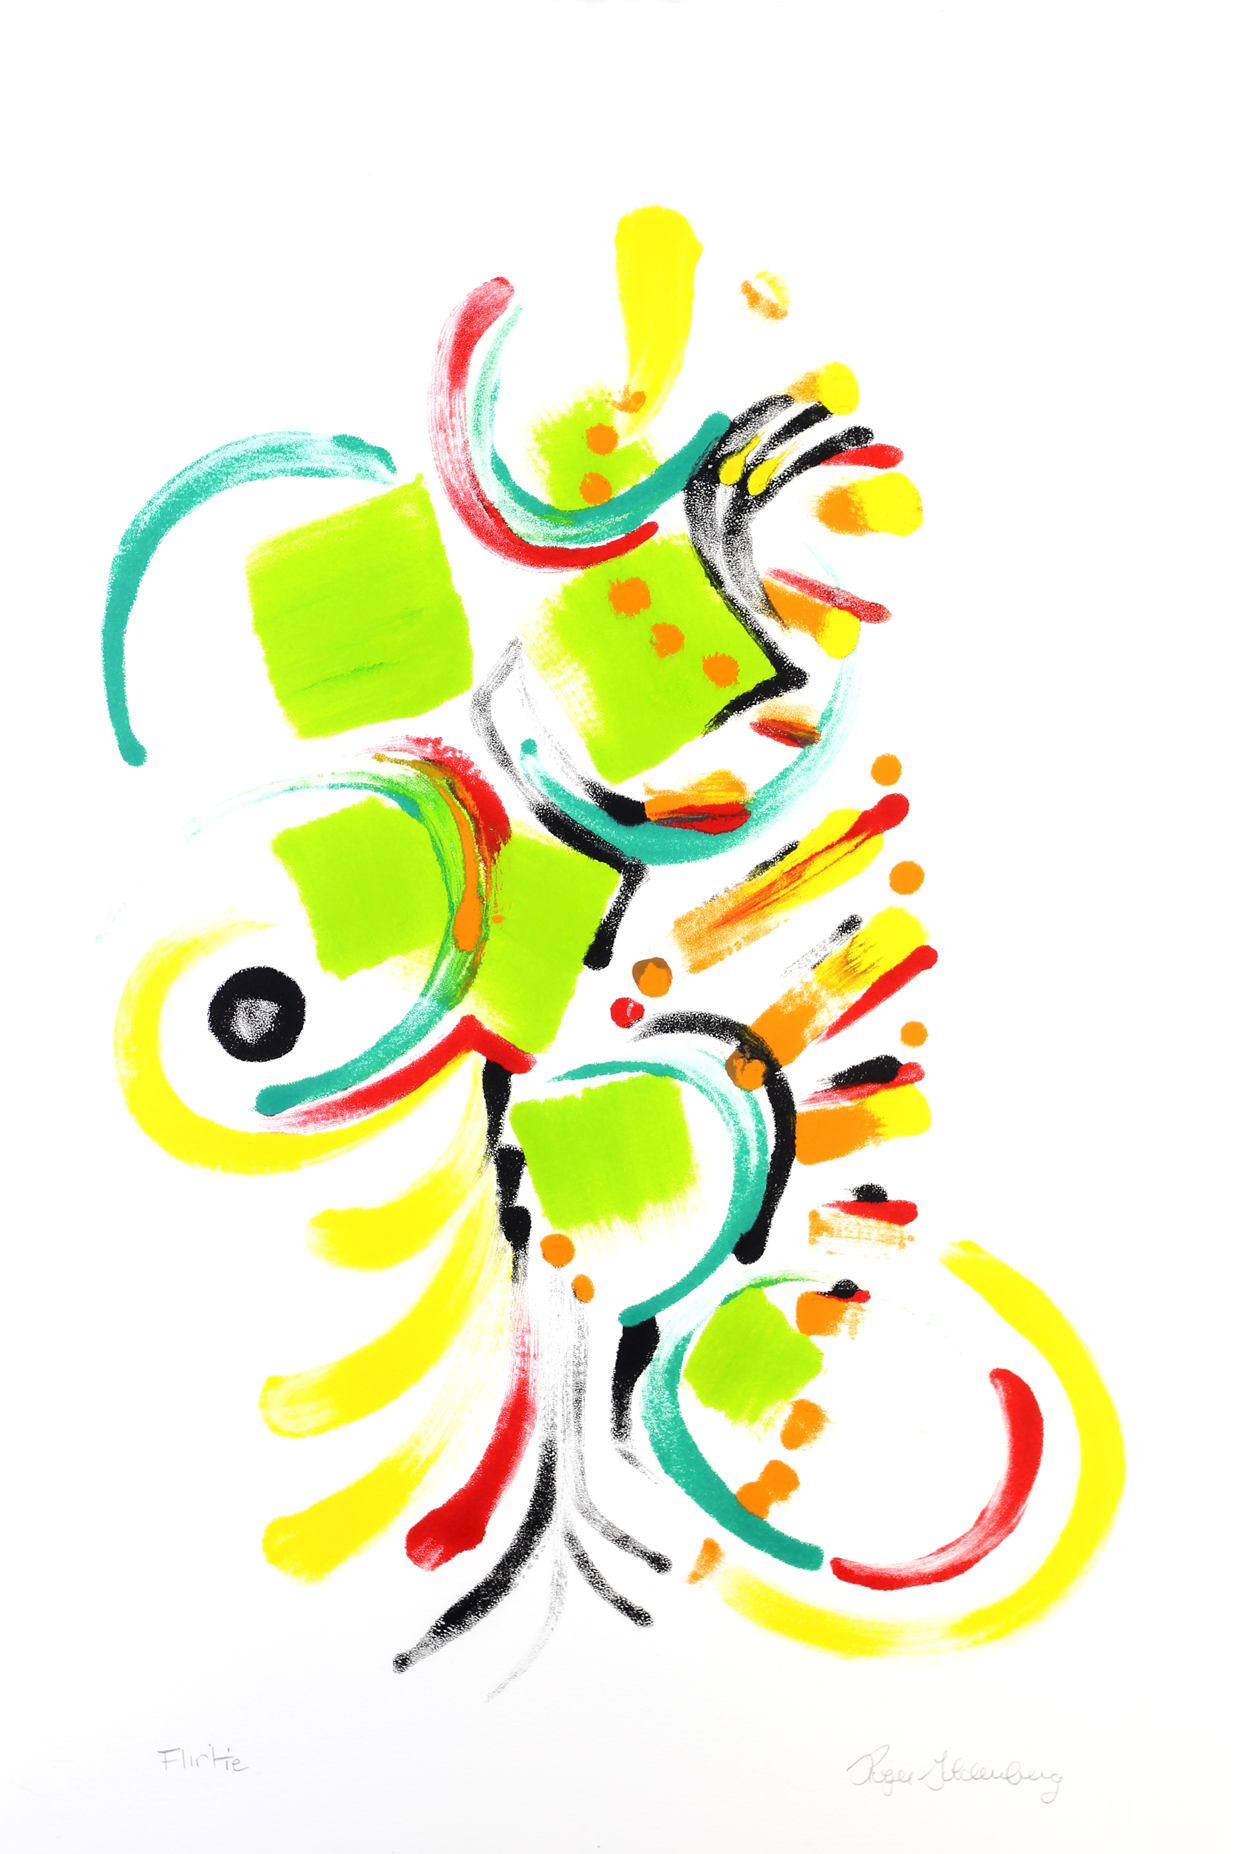 Roger Goldenberg's Visual Jazz Monotype Gallery D has prints pulled from shaped plates. Their style riffs on Goldenberg's shaped visual jazz paintings Flirtie